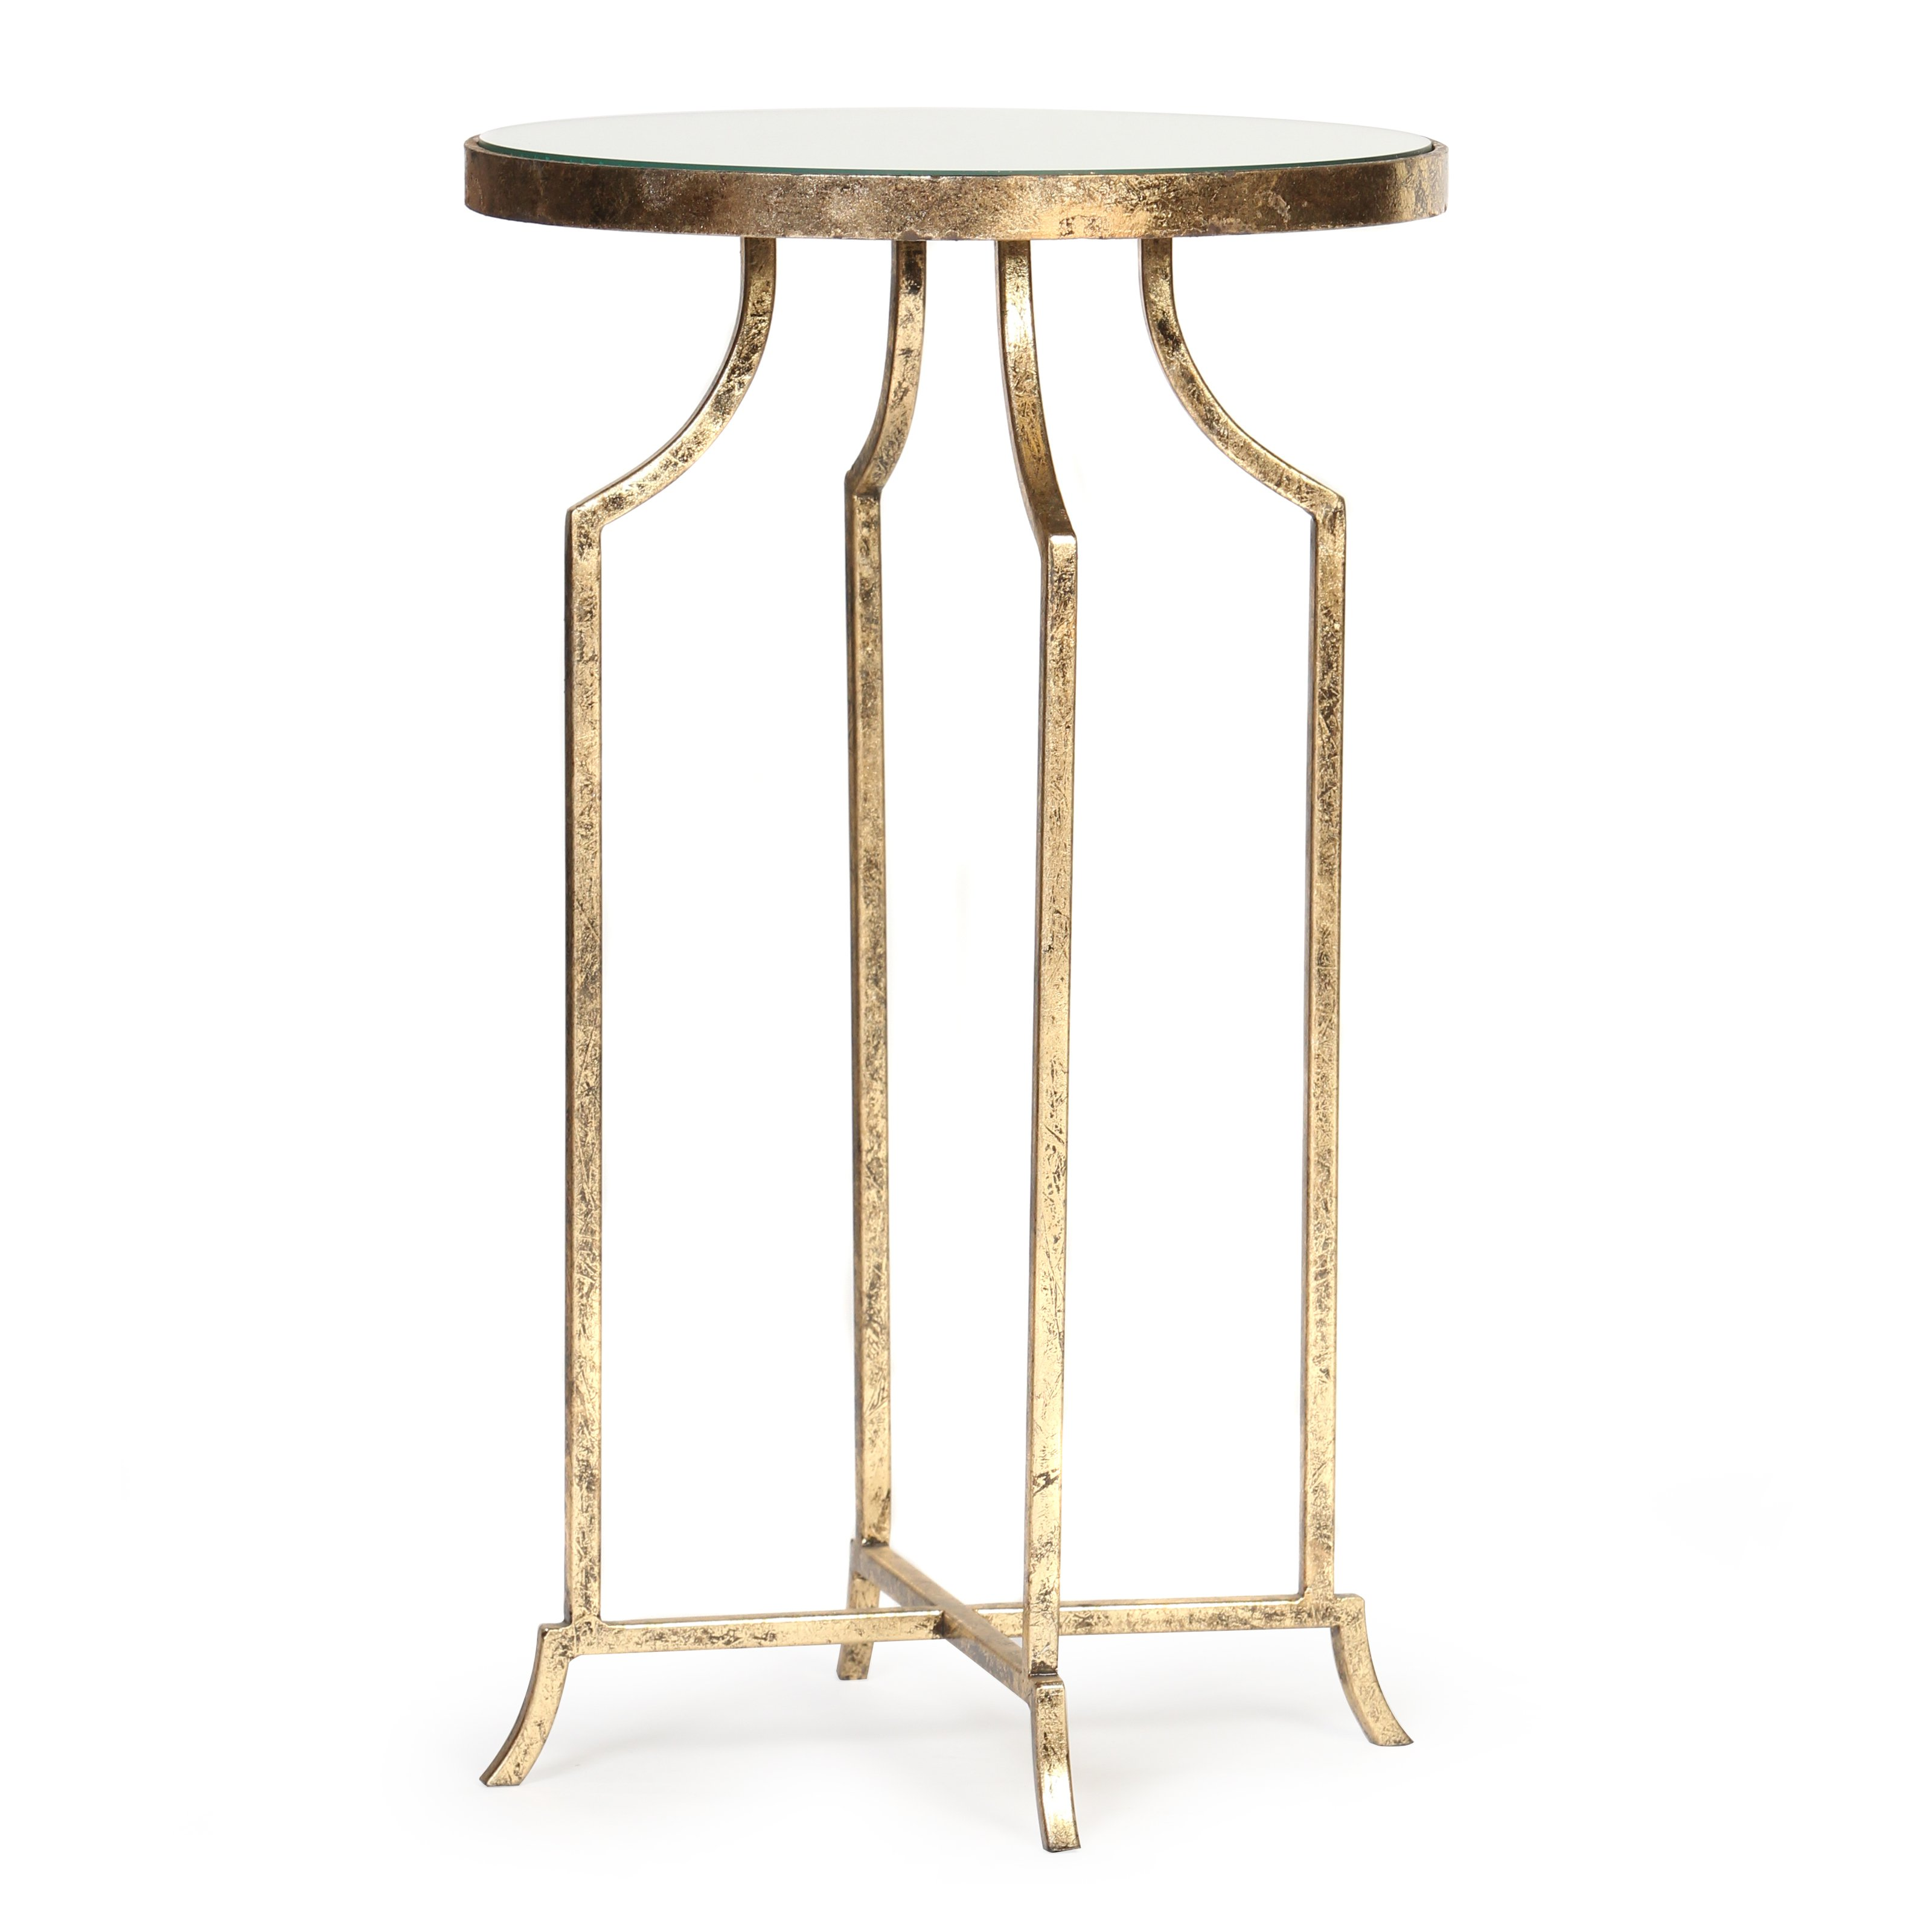 knox and harrison round accent table gold leaf master mirror target white dresser small garden patio decor room essentials office chair kmart dining outdoor cocktail narrow